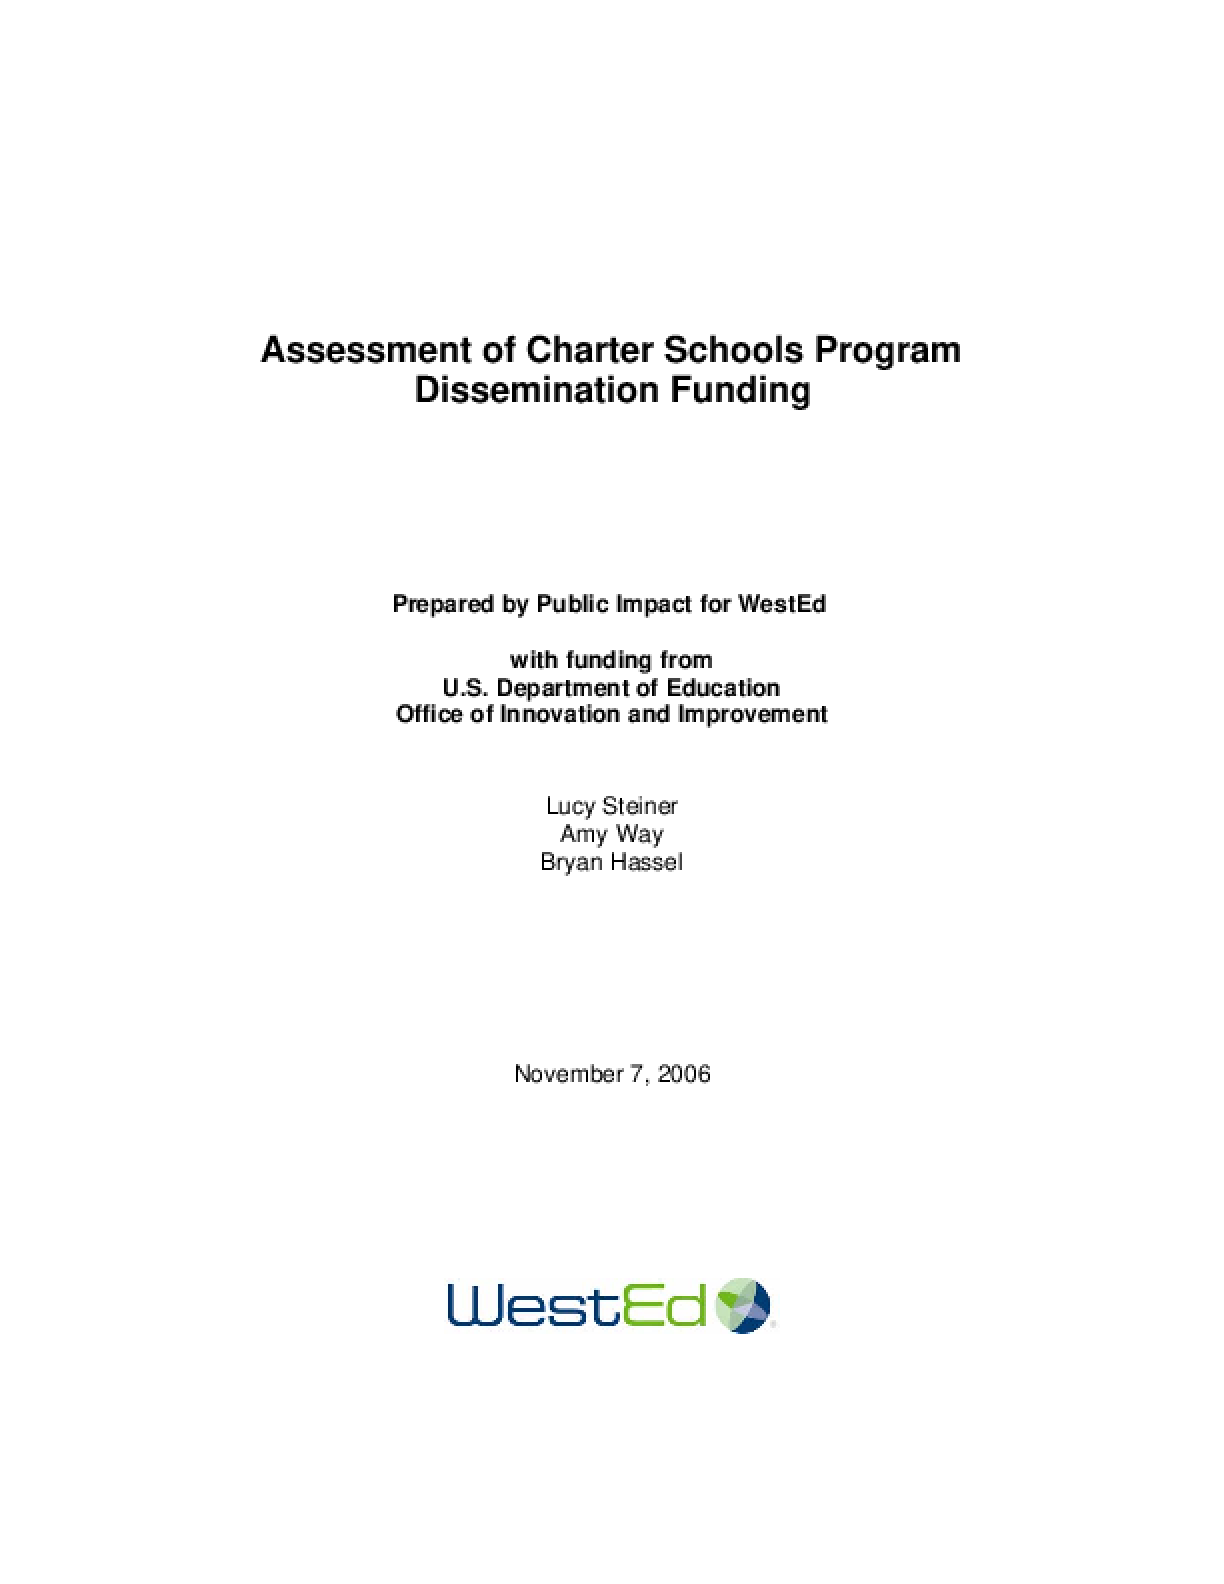 Assessment of Charter Schools Program Dissemination Funding